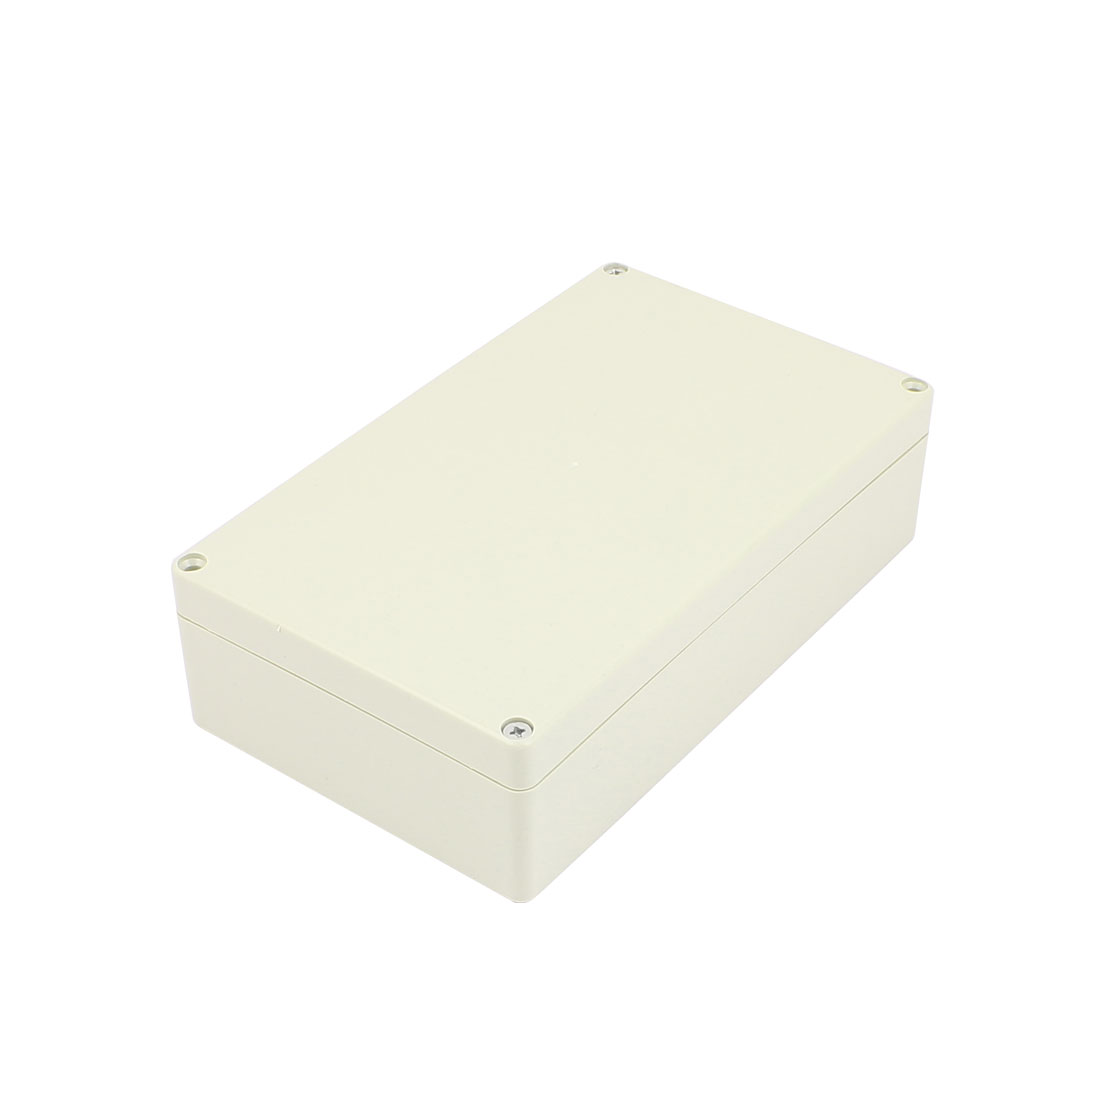 Dustproof IP65 Junction Box Case DIY Terminal Connect Enclosure Adaptable 192mm x 112mm x 48mm